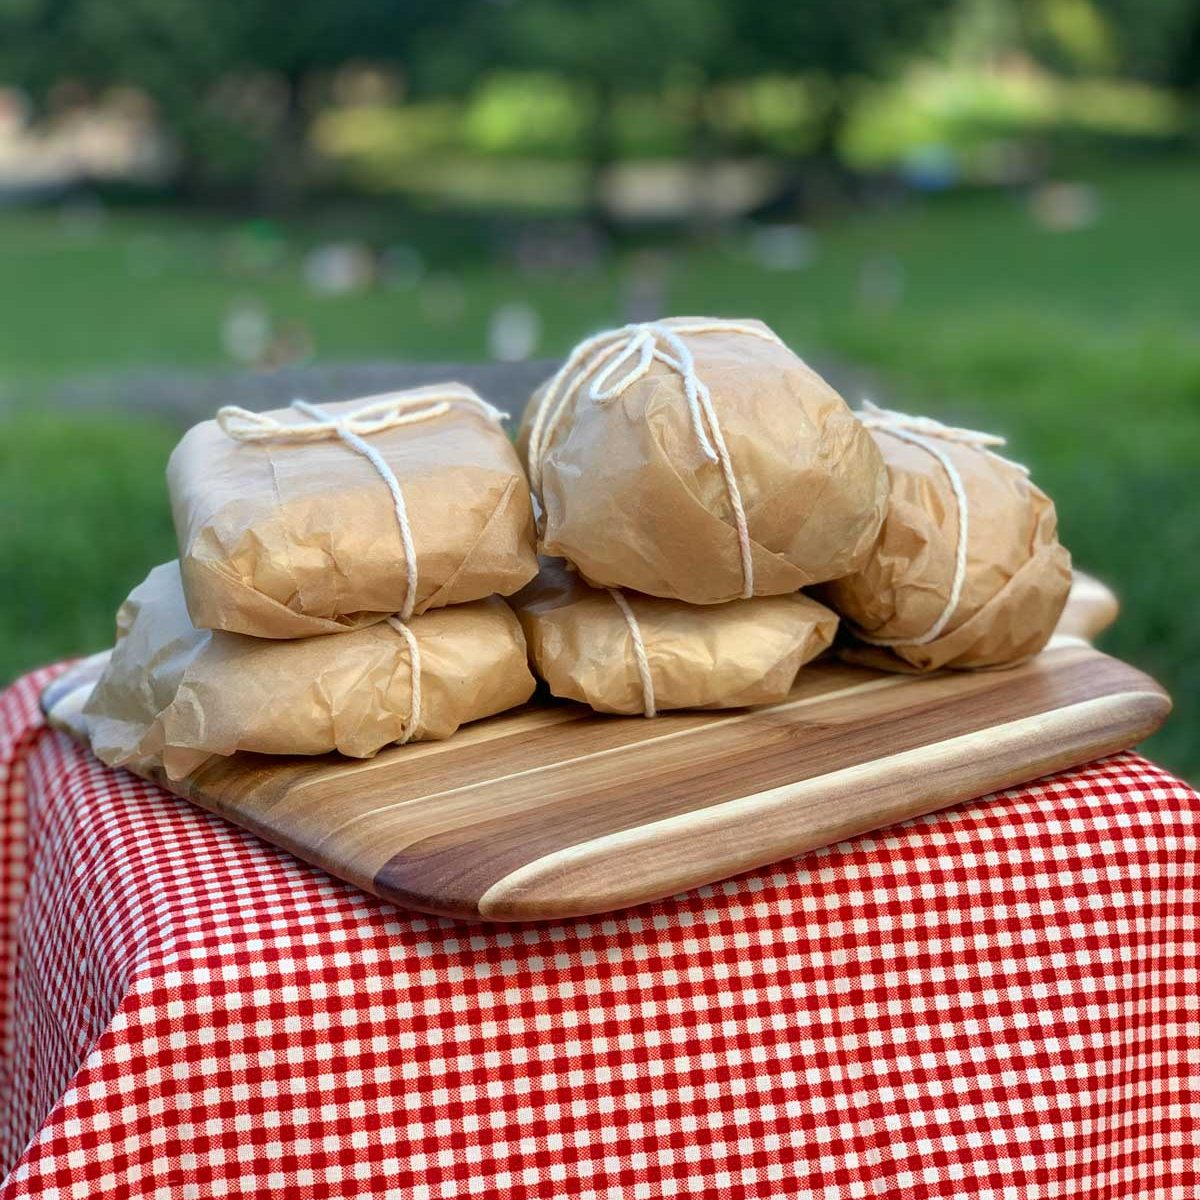 Pan Bagnat Tuna Nicoise Sandwiches wrapped for a picnic